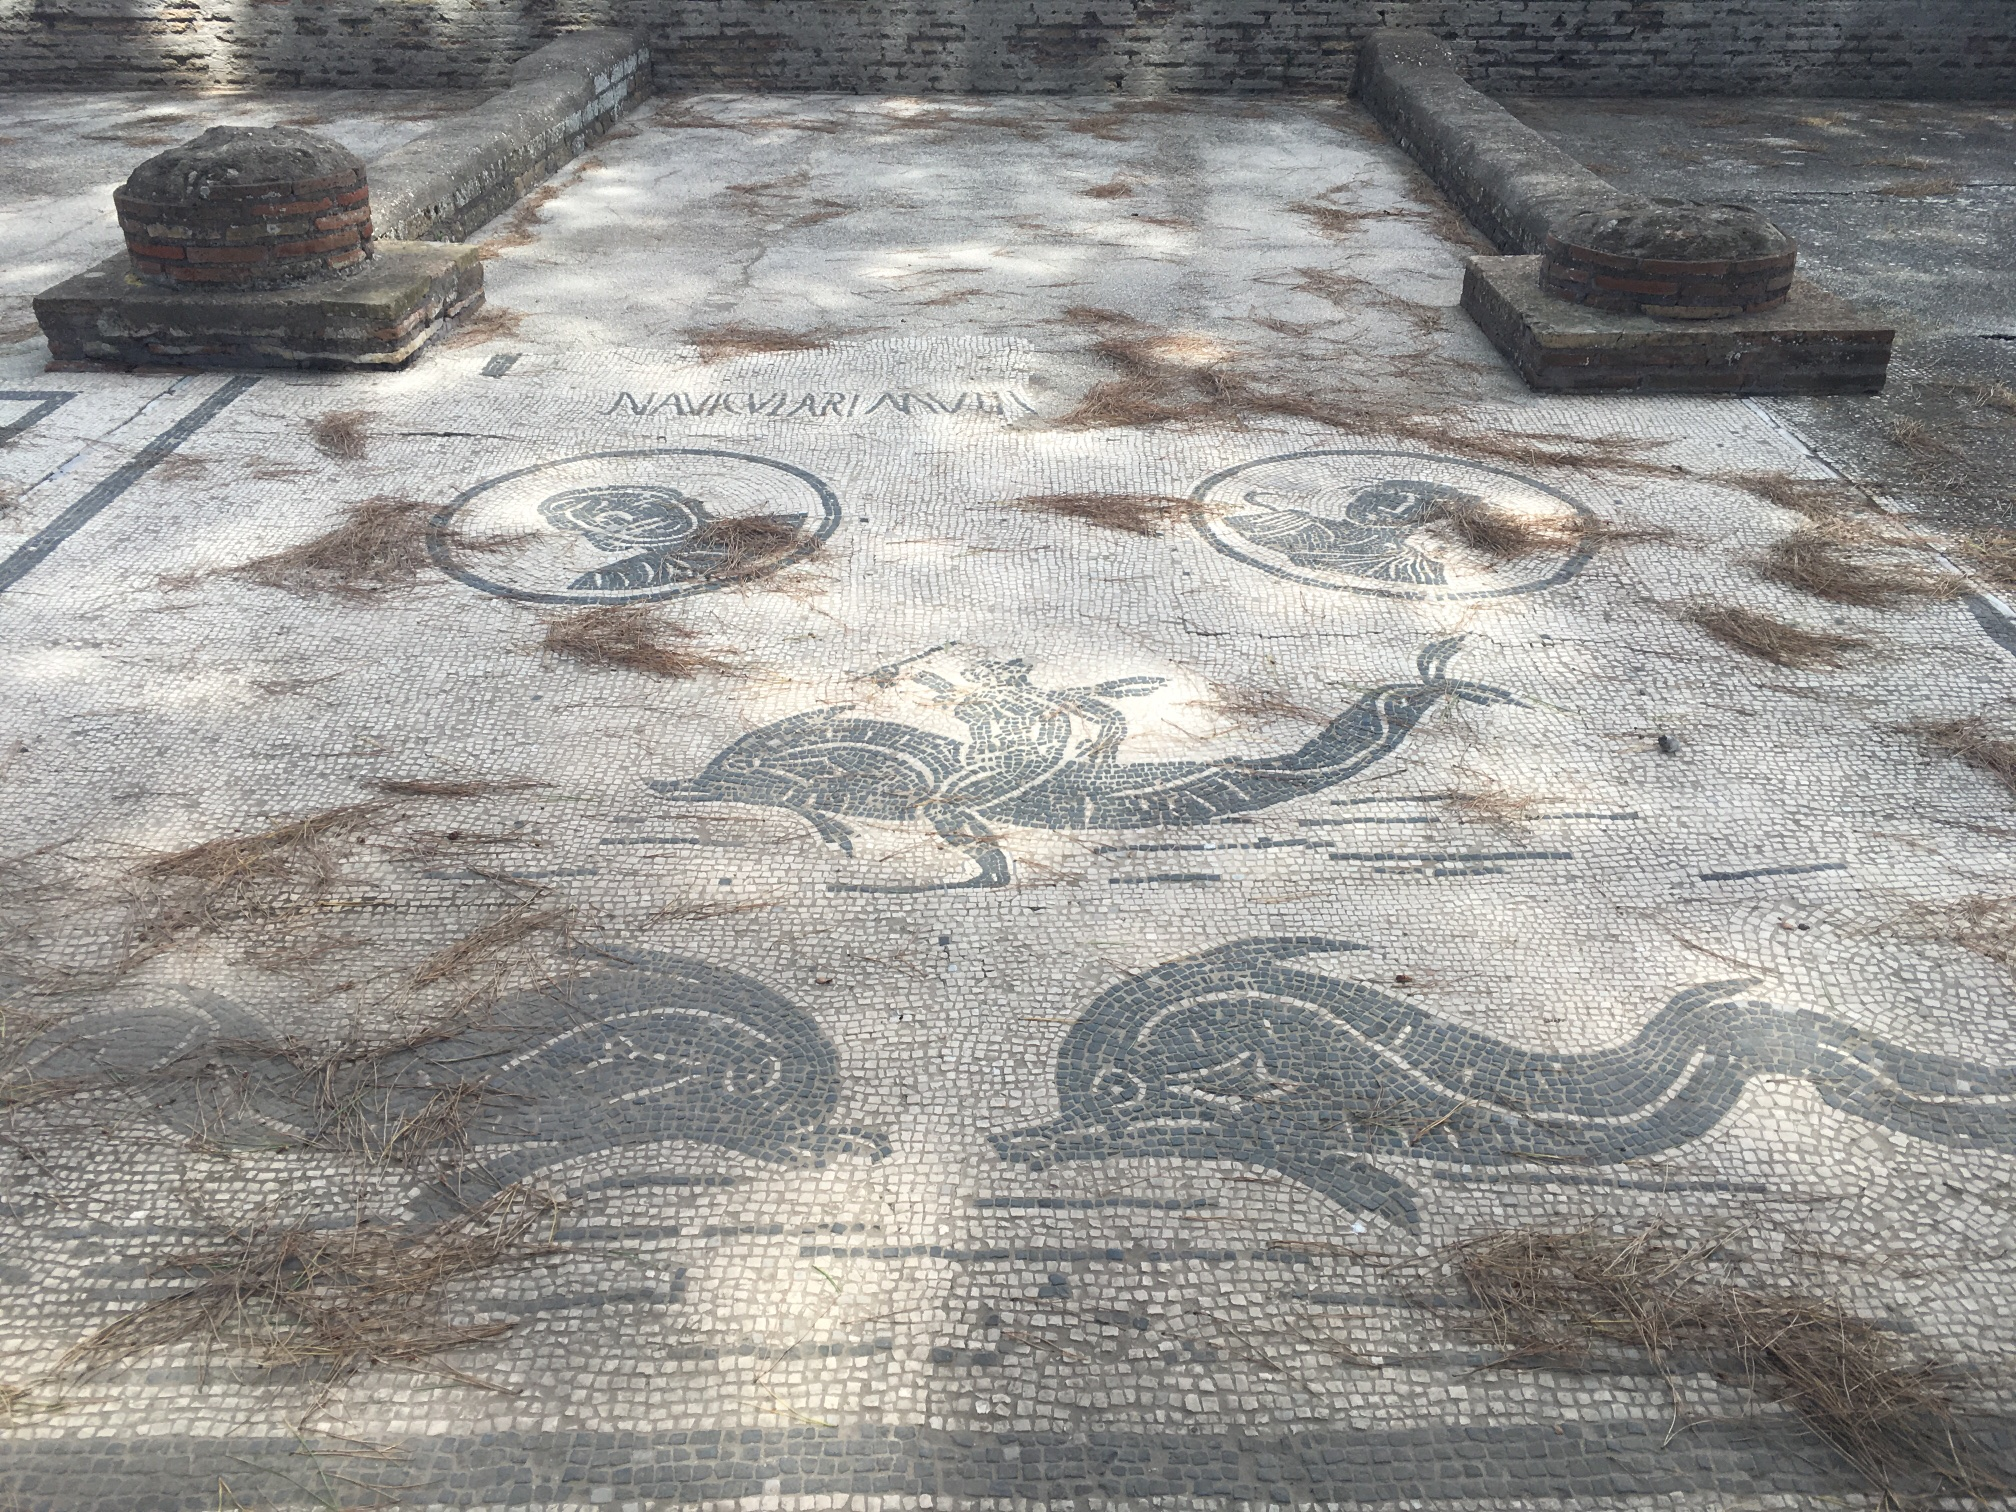 The main square of the town is surrounded by stalls, where the people of Ostia ran their businesses. Each stall had a fresco on the ground in front of it indicating what they did. Again, I'm not sure what these guys did....dolphin rides?